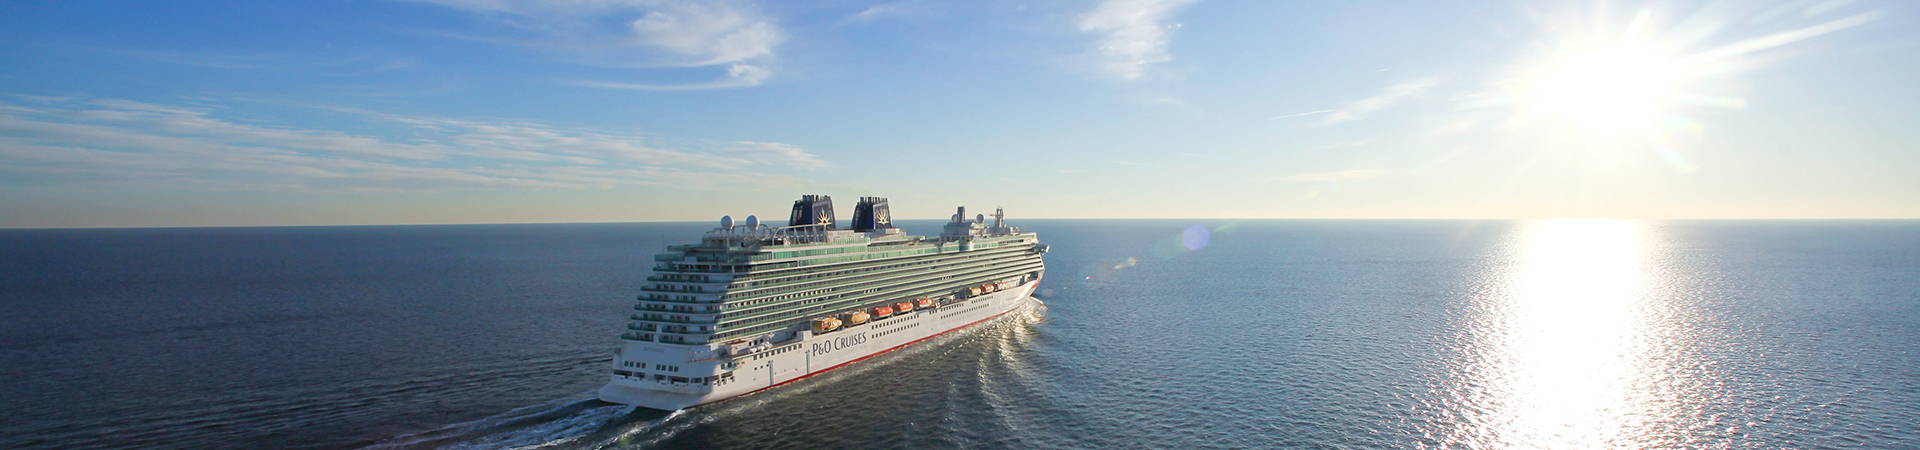 P O Cruises Cruises Deals And Packages 2021 2022